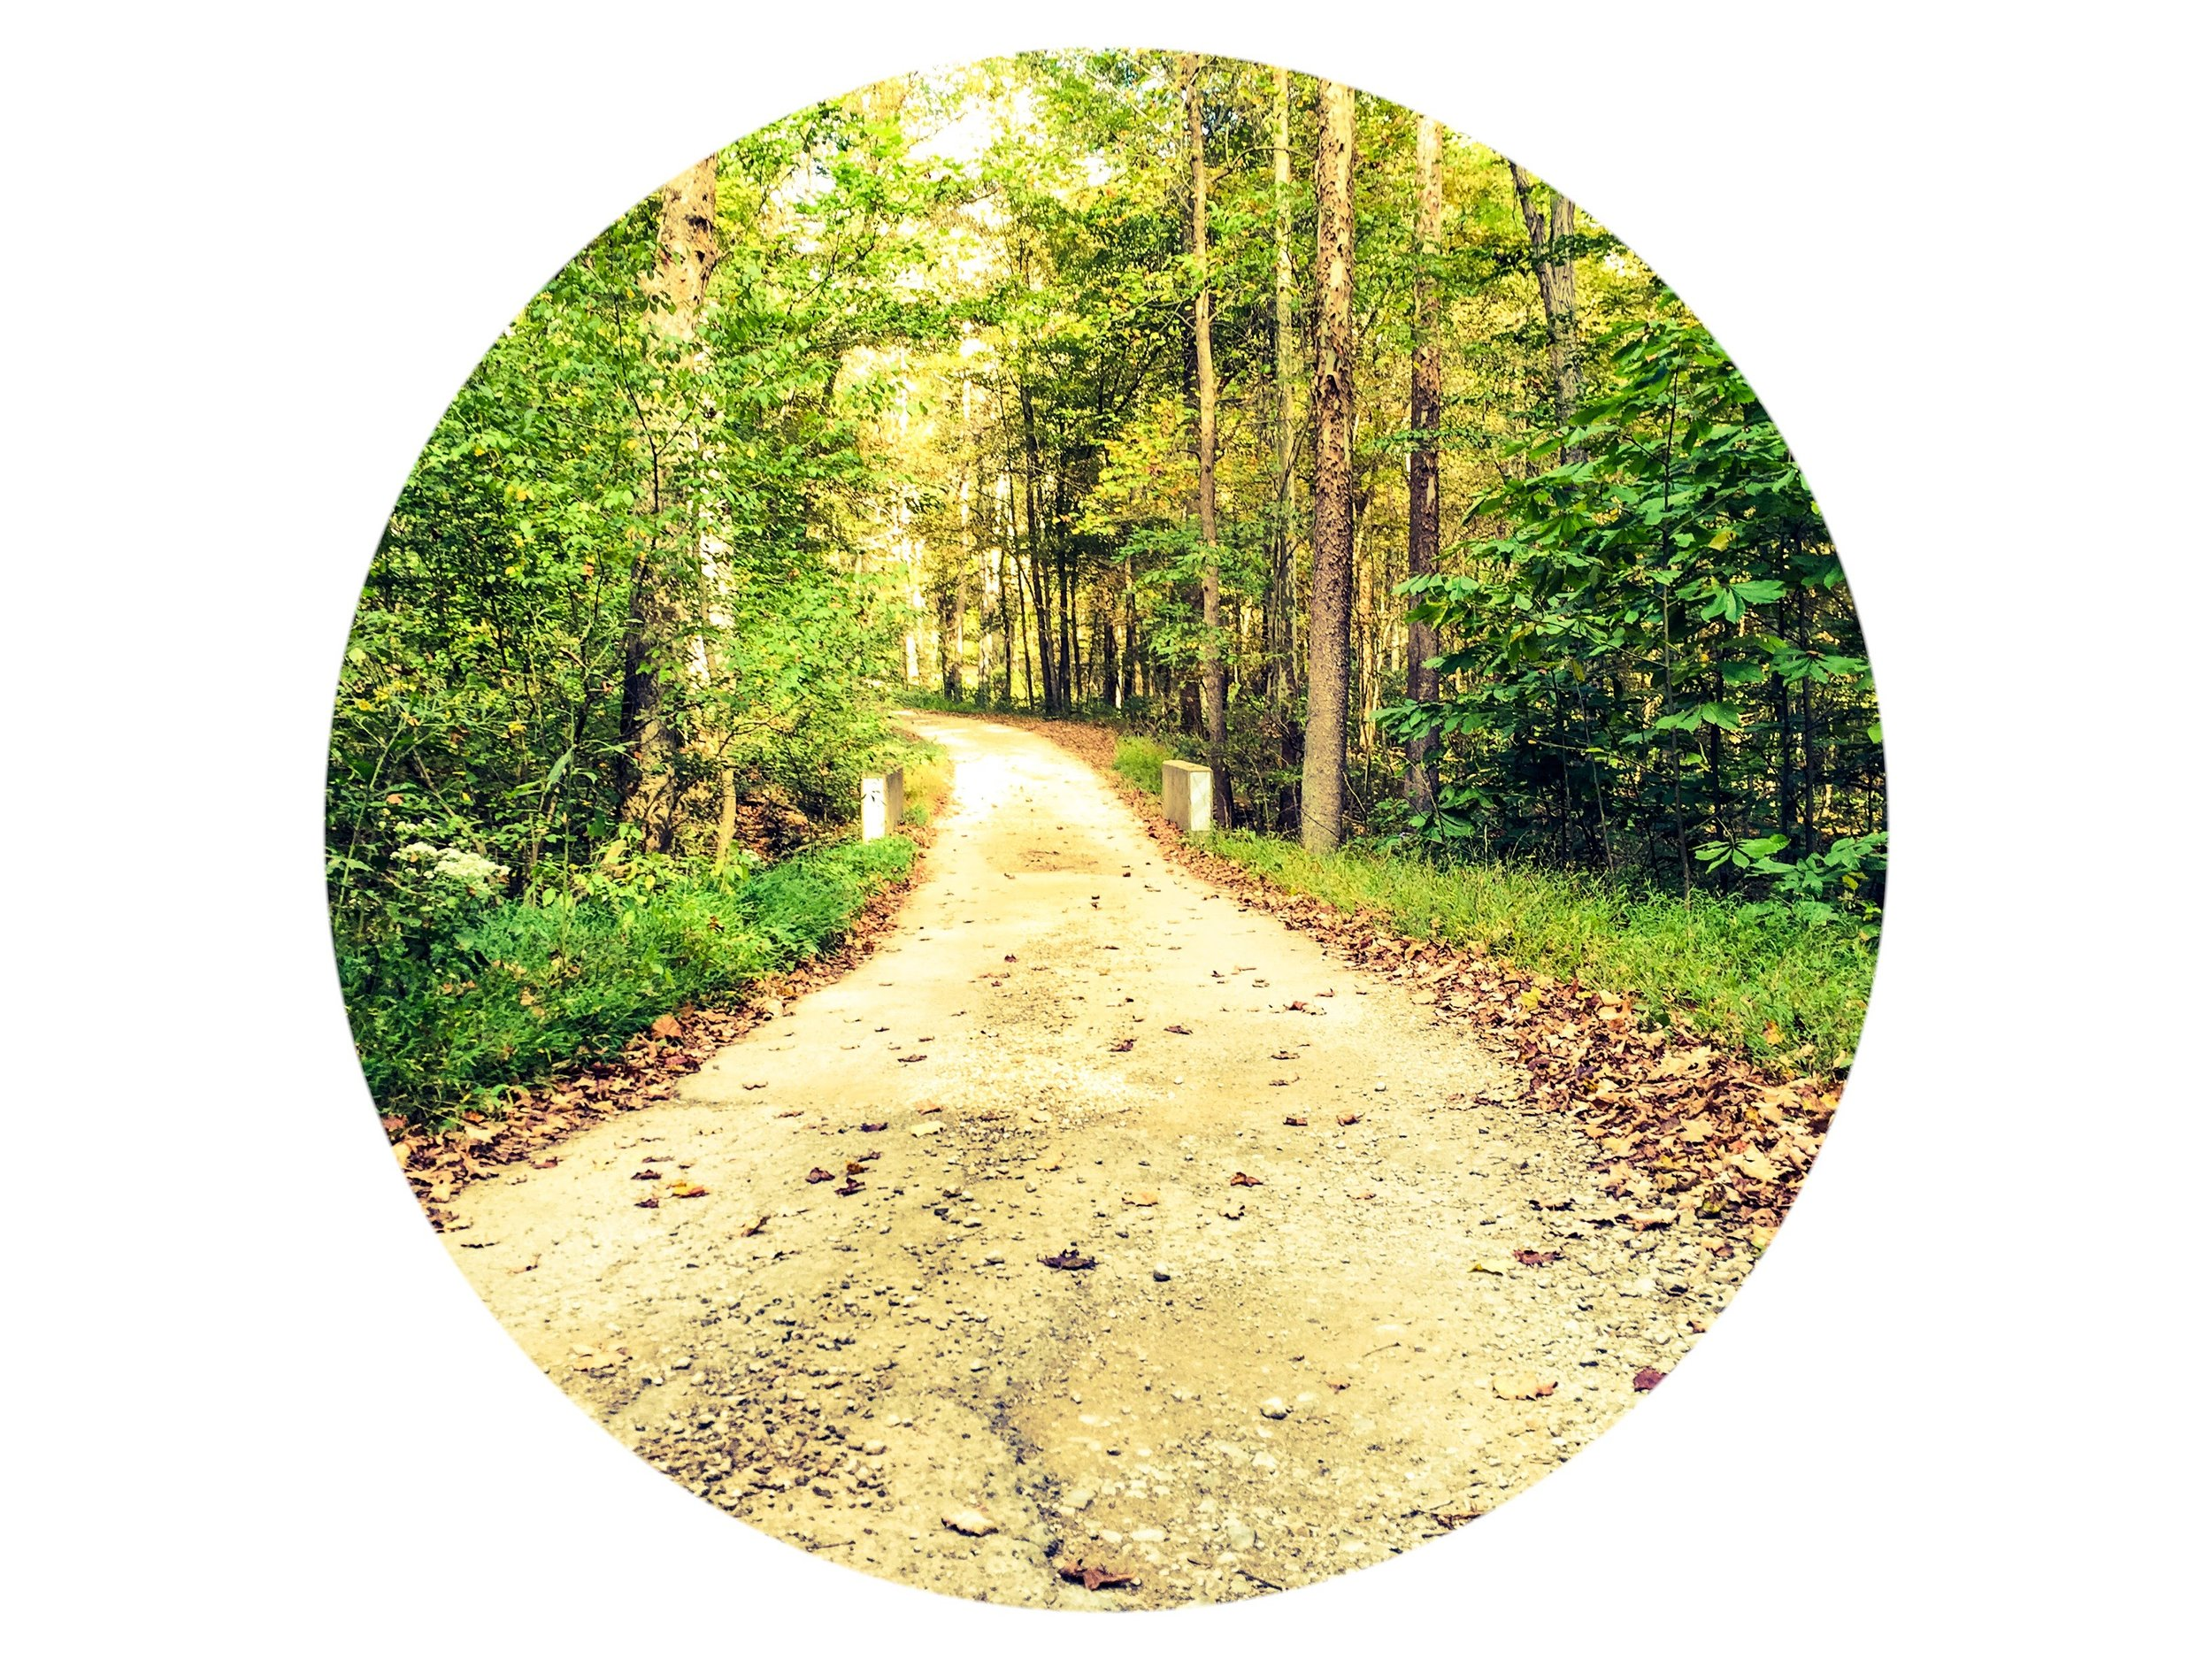 The Road Less Travelled.